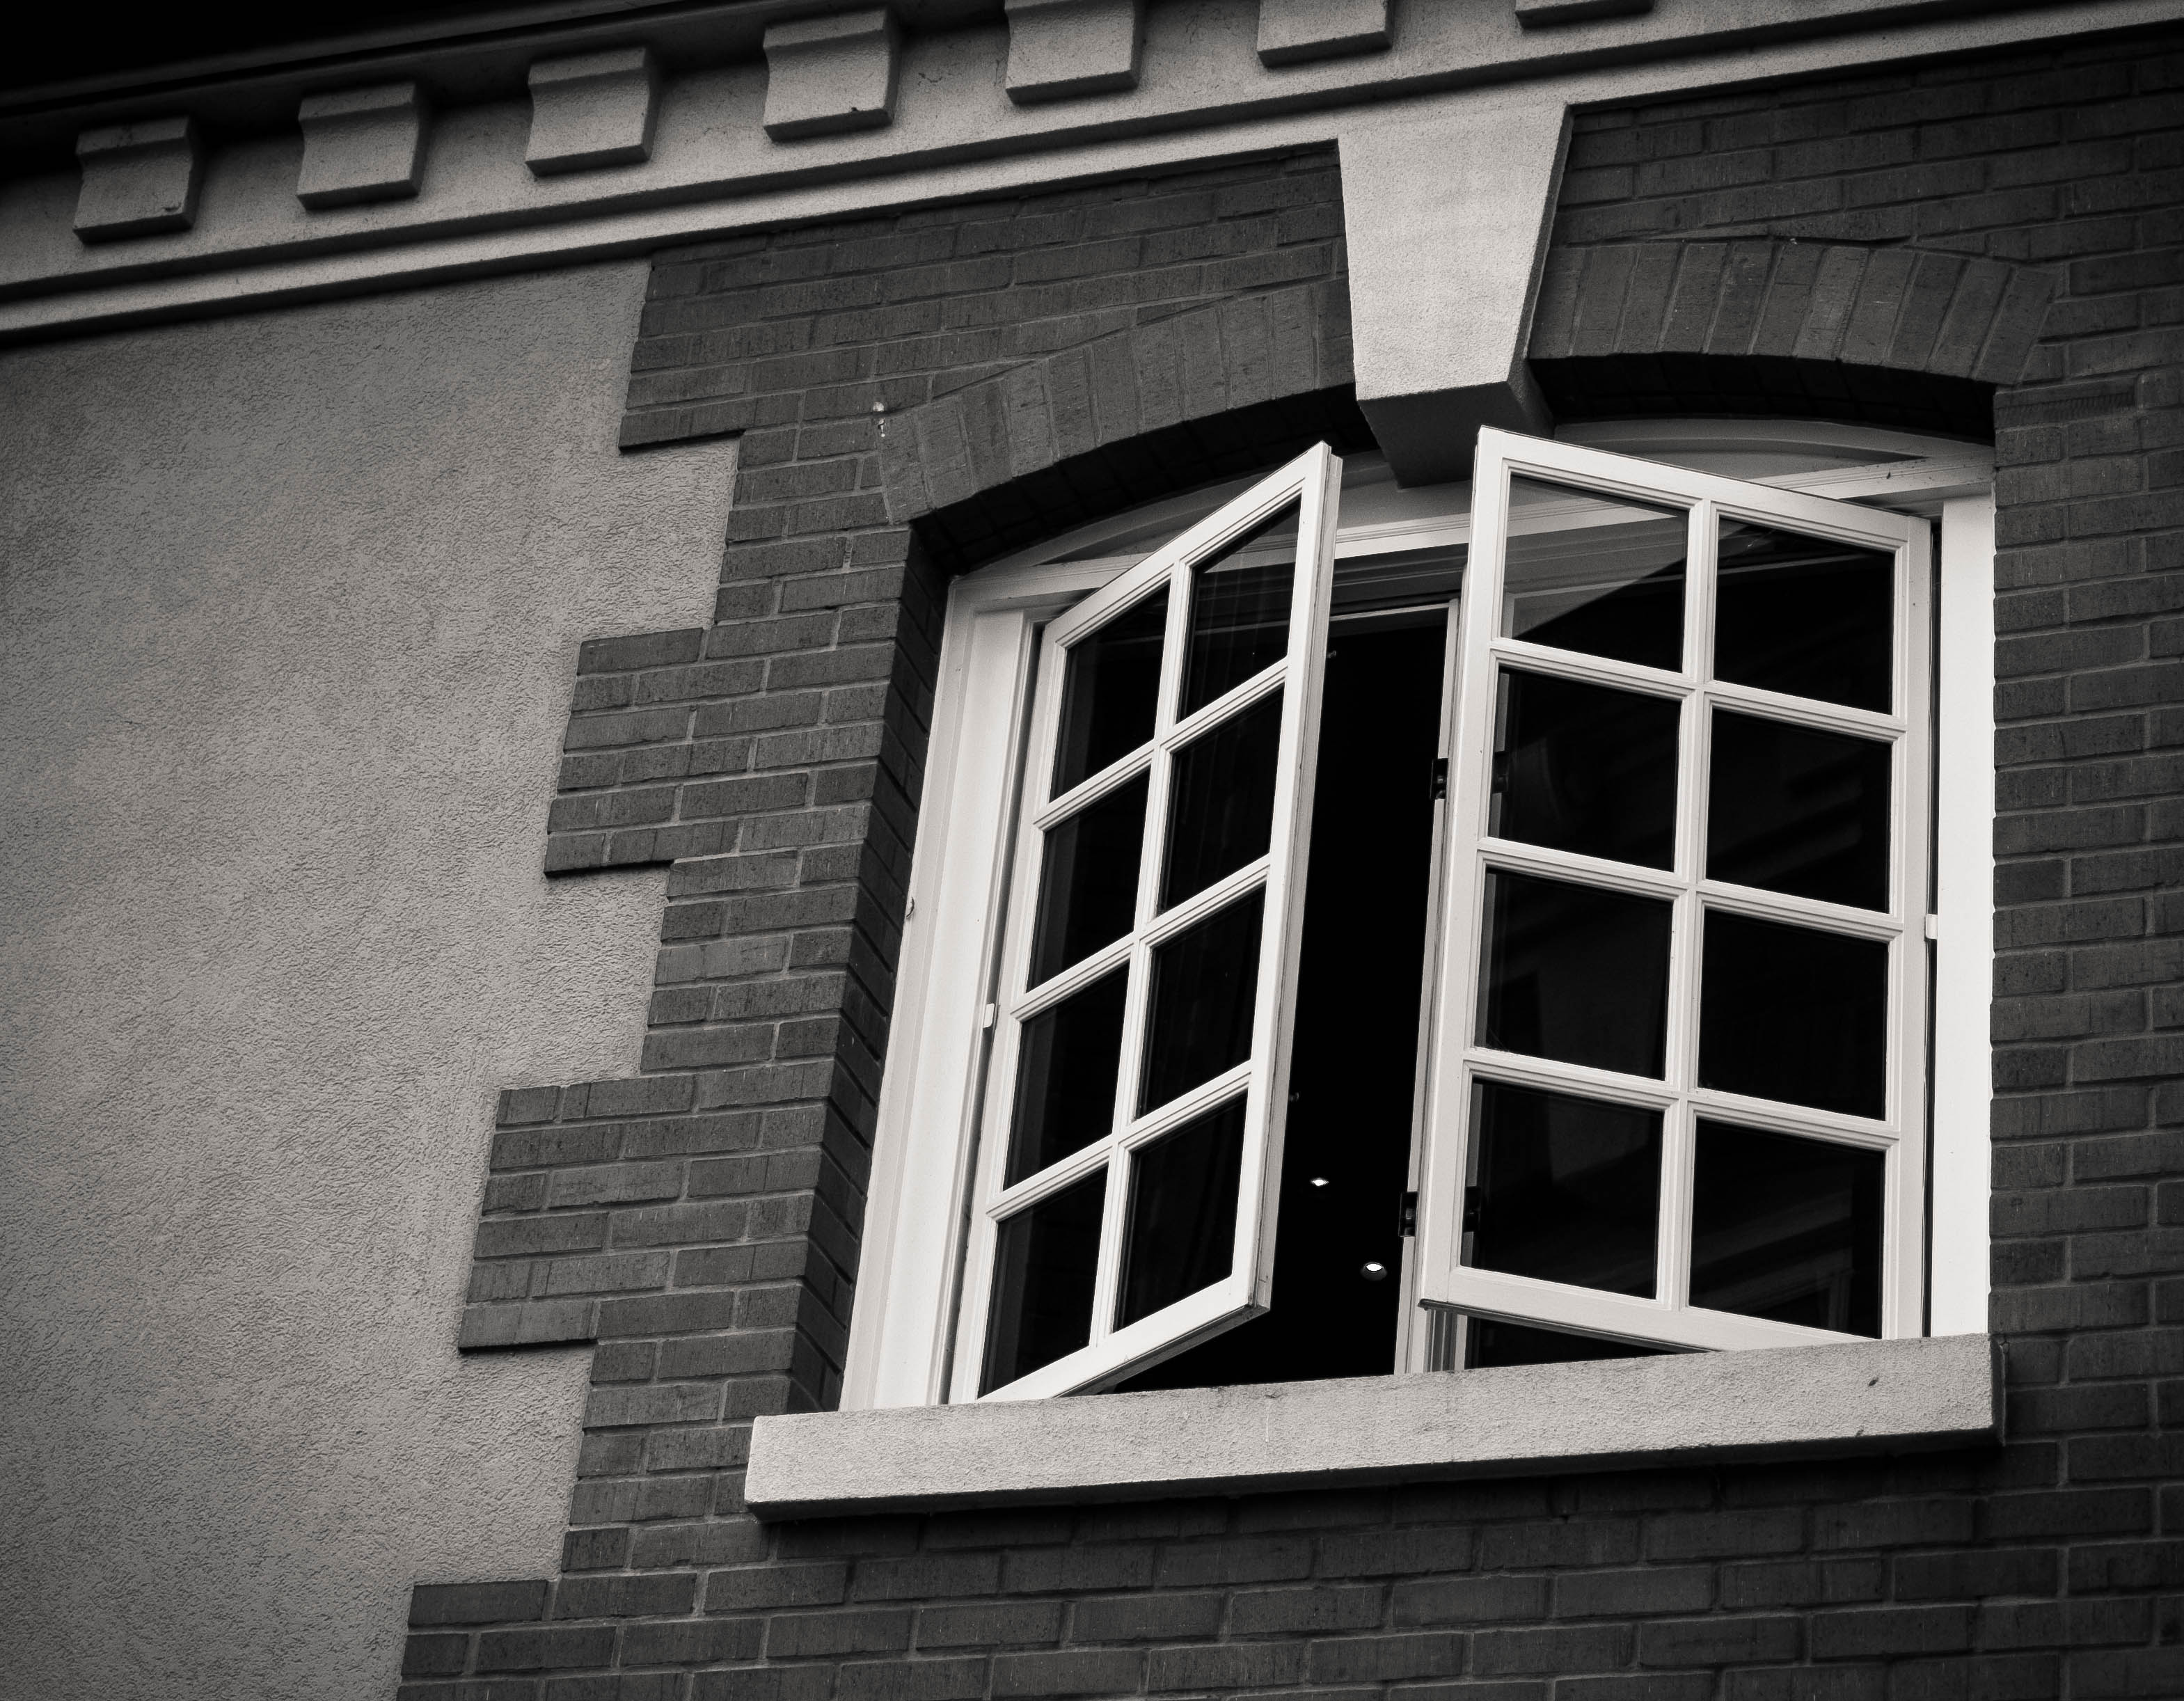 French windows at Domaine Carneros are let open to let the rain winds and smells waft in